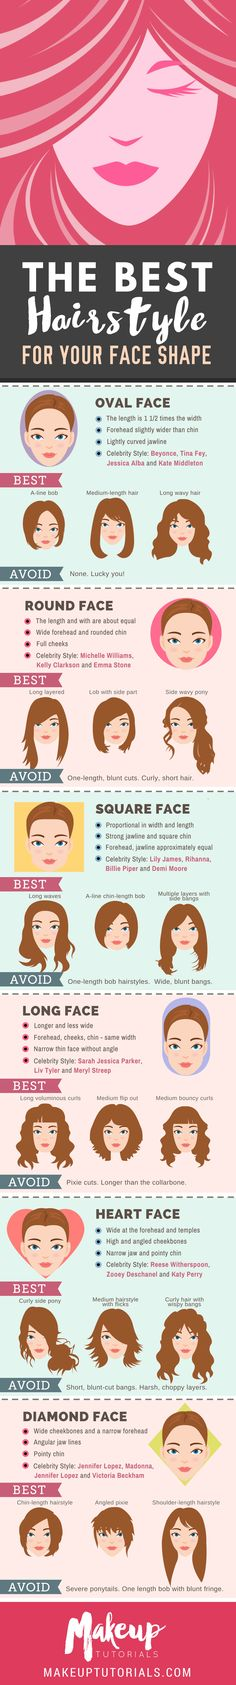 The Ultimate Hairstyle Guide For Your Face Shape | The Best Haircut for your Face Shape.